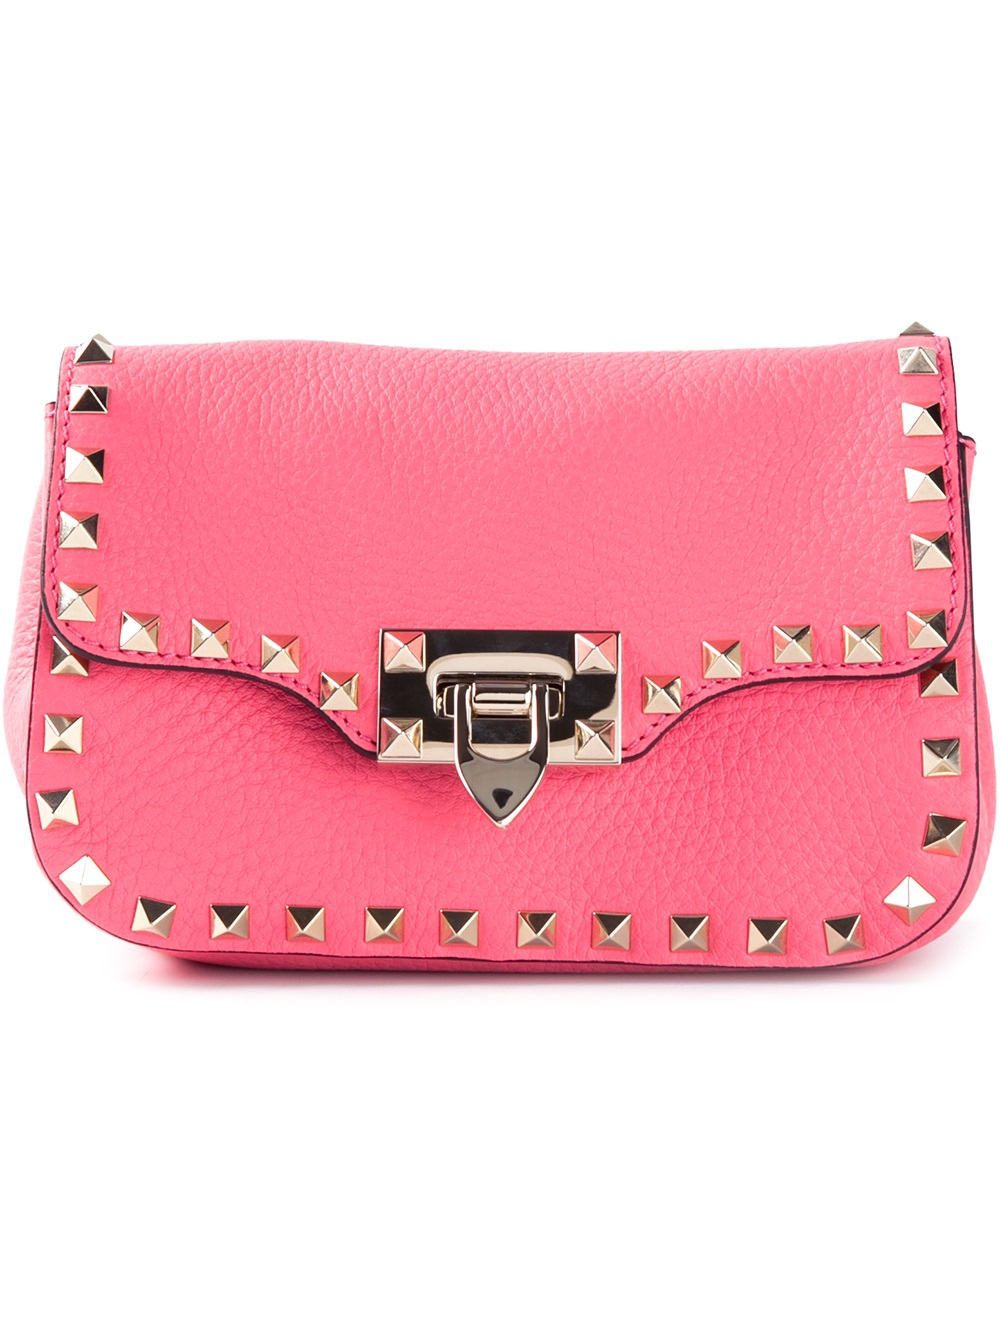 1b6967ef61 Gallery. Previously sold at: Farfetch · Women's Valentino Rockstud Bags